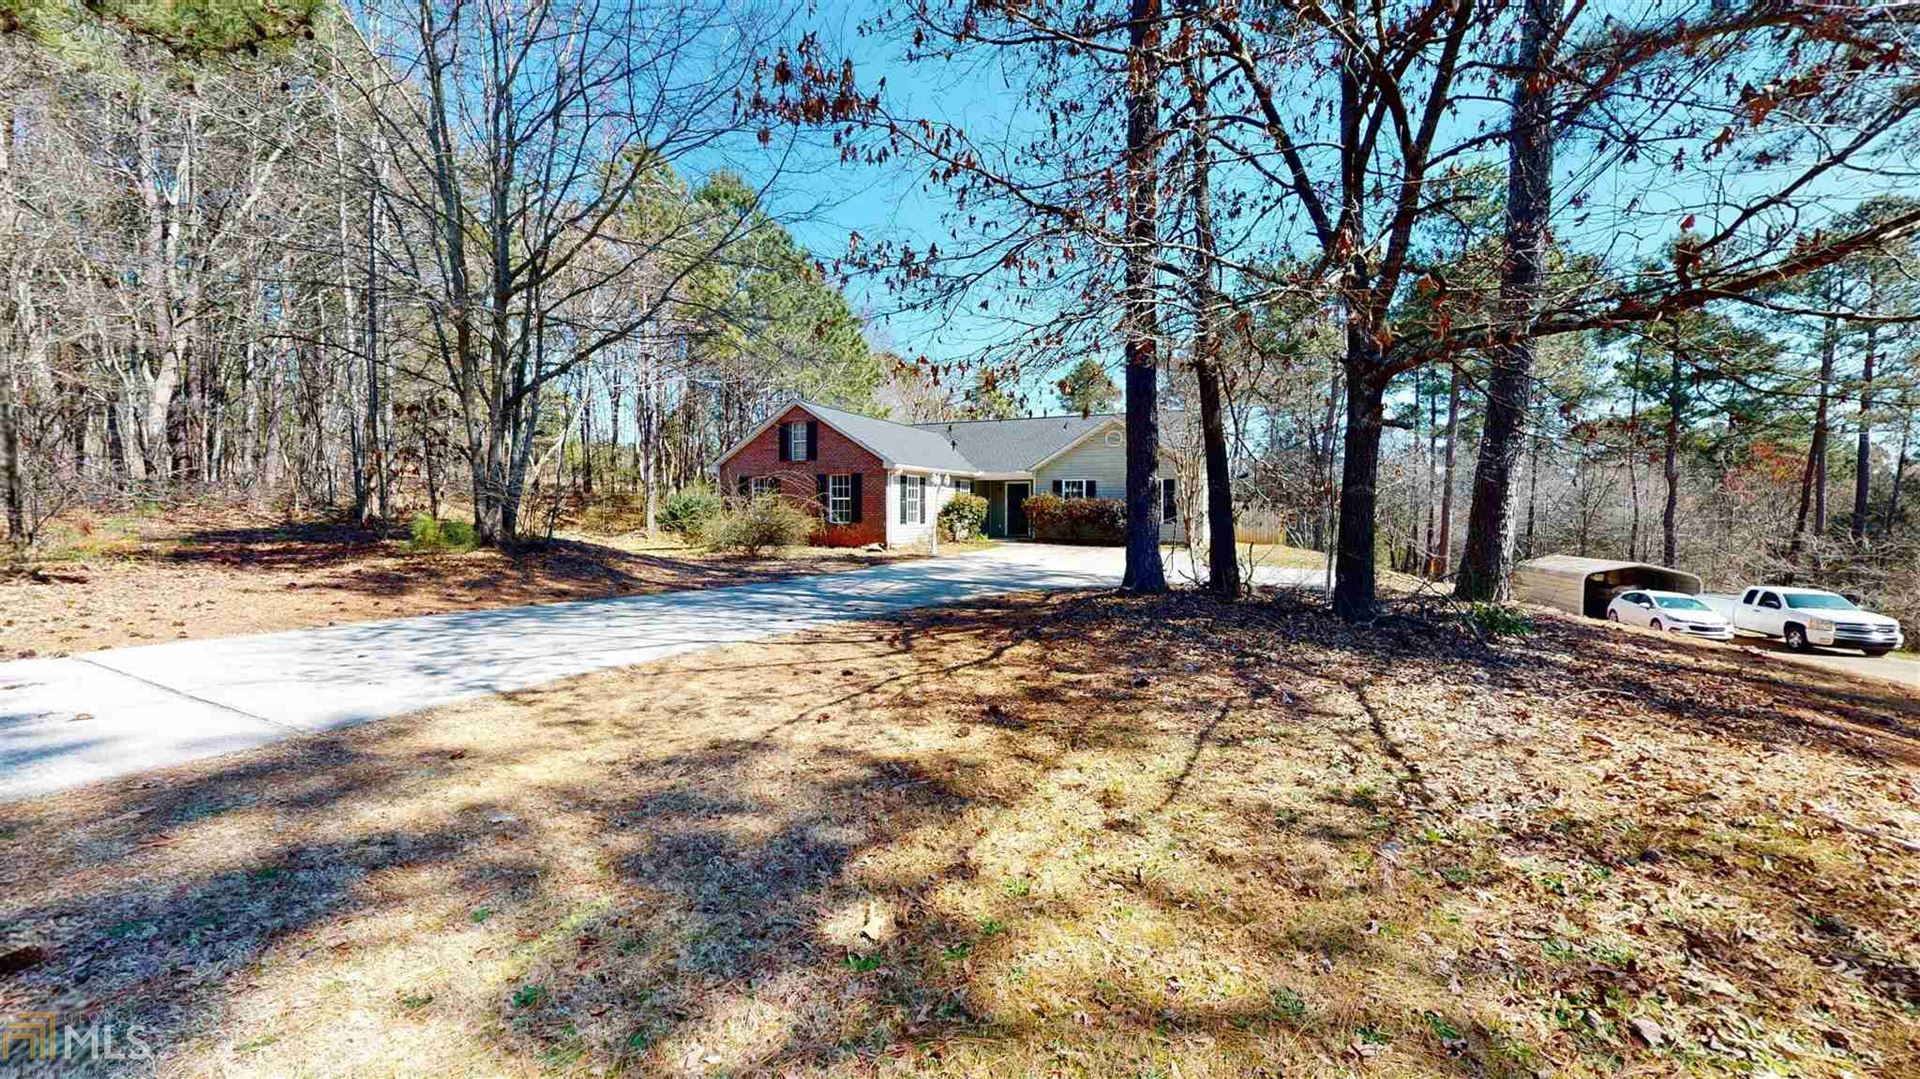 Photo of 4705 Bullock Bridge Rd, Loganville, GA 30052 (MLS # 8935826)